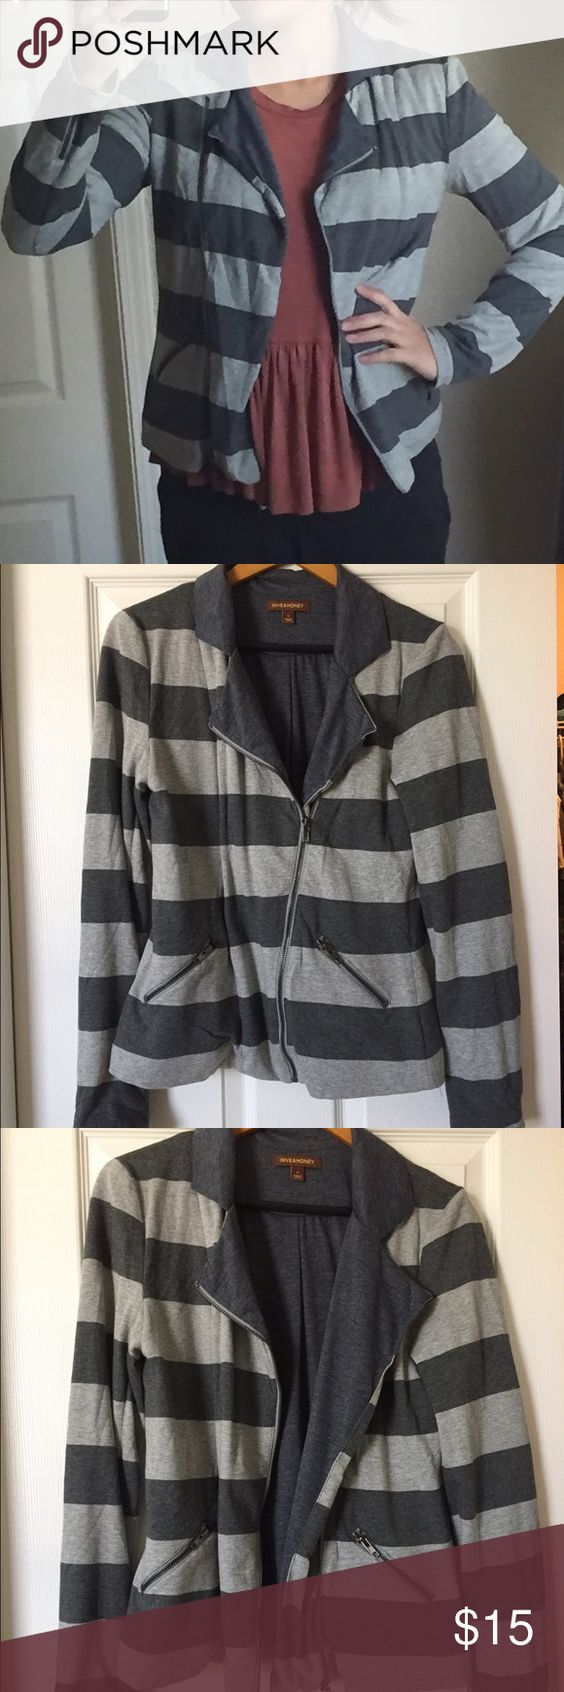 Hive & Honey Gray Striped Knit Blazer Like new Hive & Honey striped gray knit blazer. Wore once. Zipper front and zipper on sleeves. I am usually a size 6 in JCrew and Gap for sizing. Let me know if you have questions. Hive & Honey Jackets & Coats Blazers